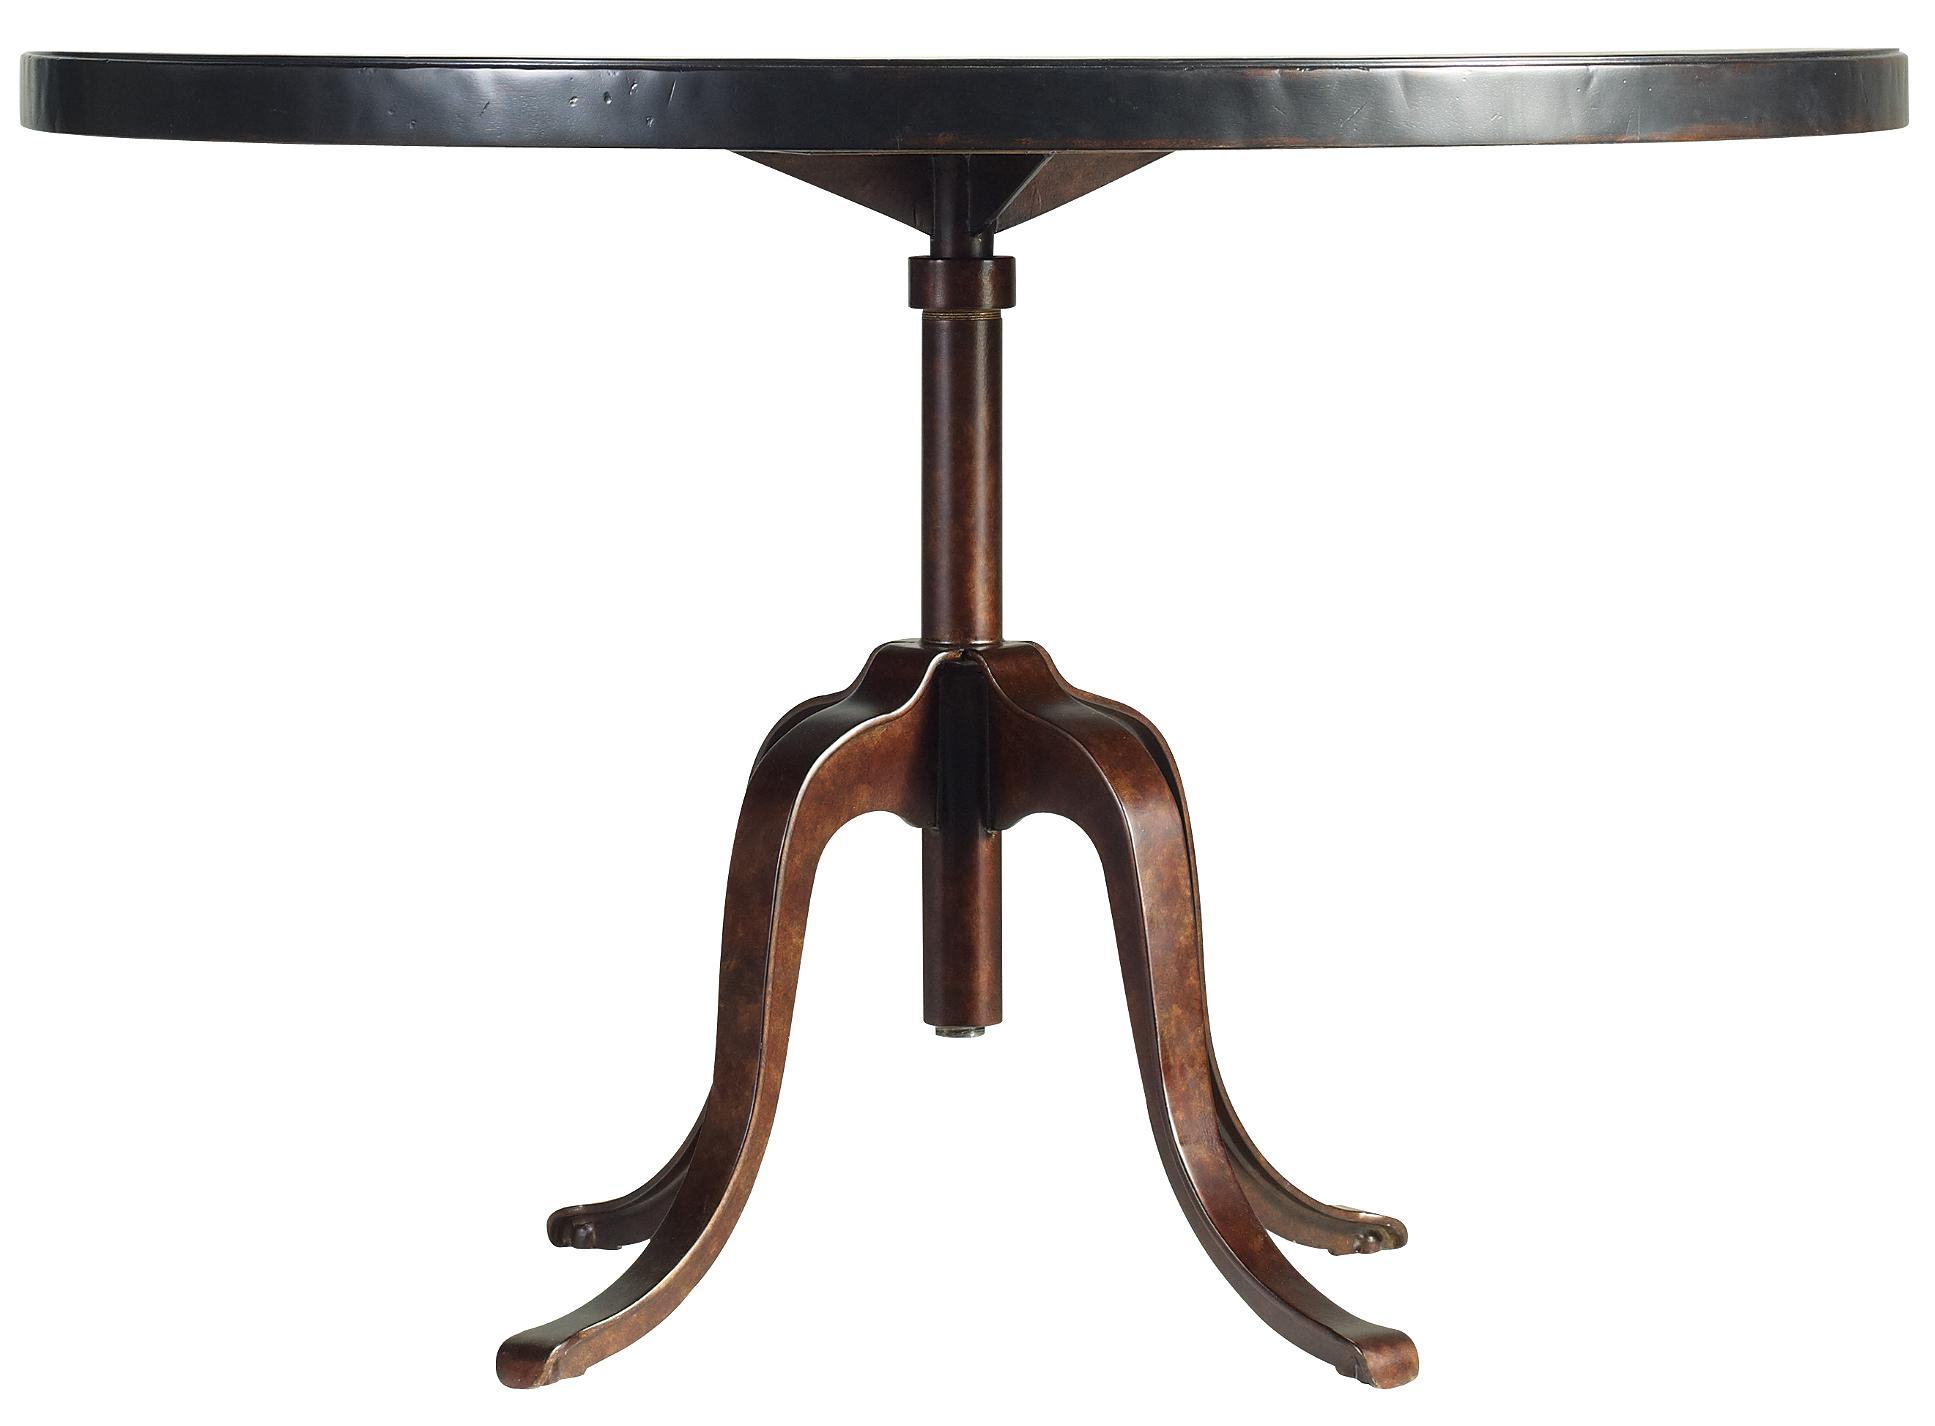 Stanley Furniture The Classic Portfolio Artisan Adjustable Height Table - Item Number: 135-81-230+130